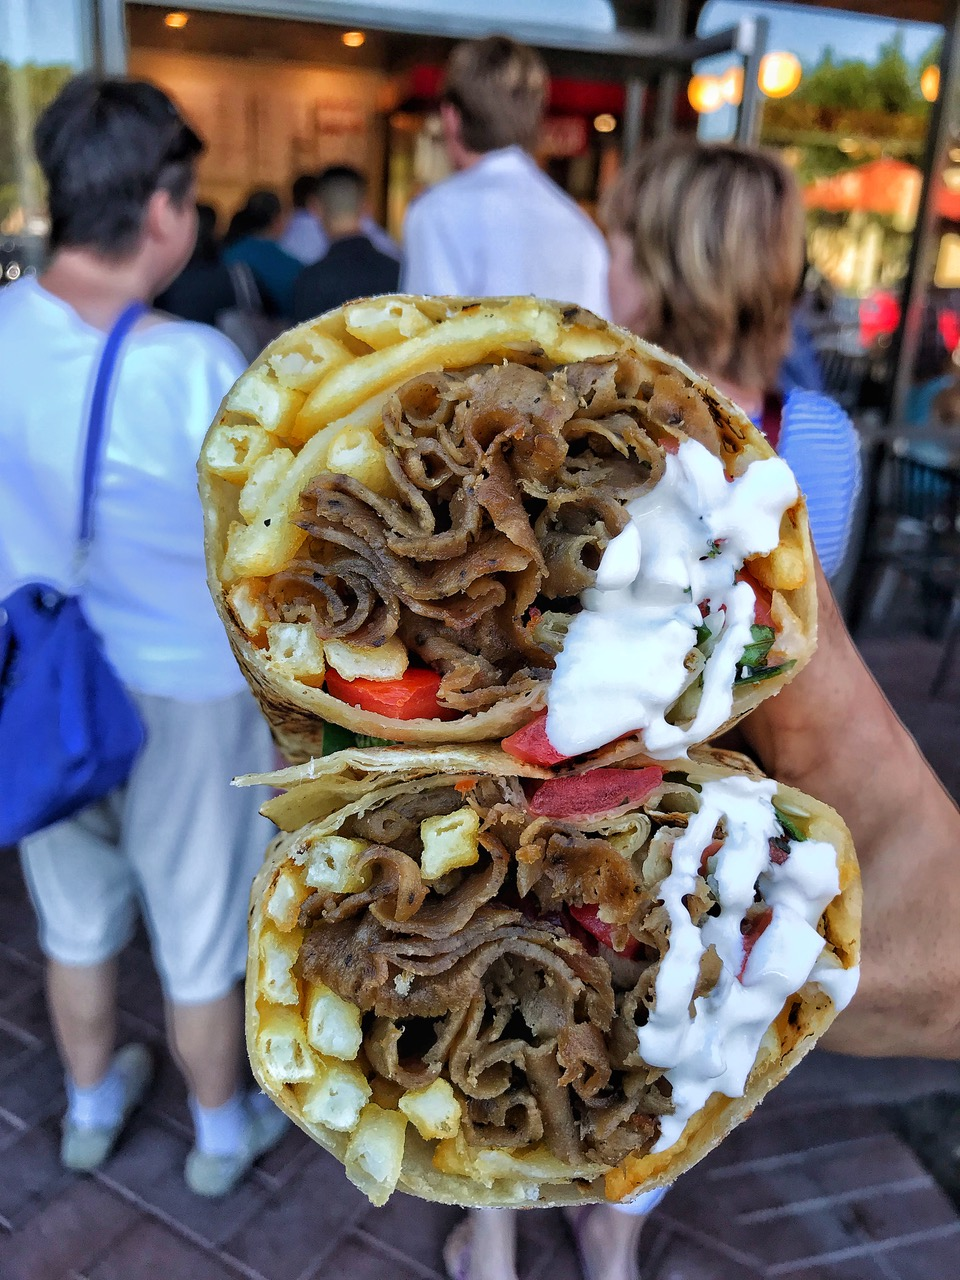 A doner kebab from The Kebab Shop